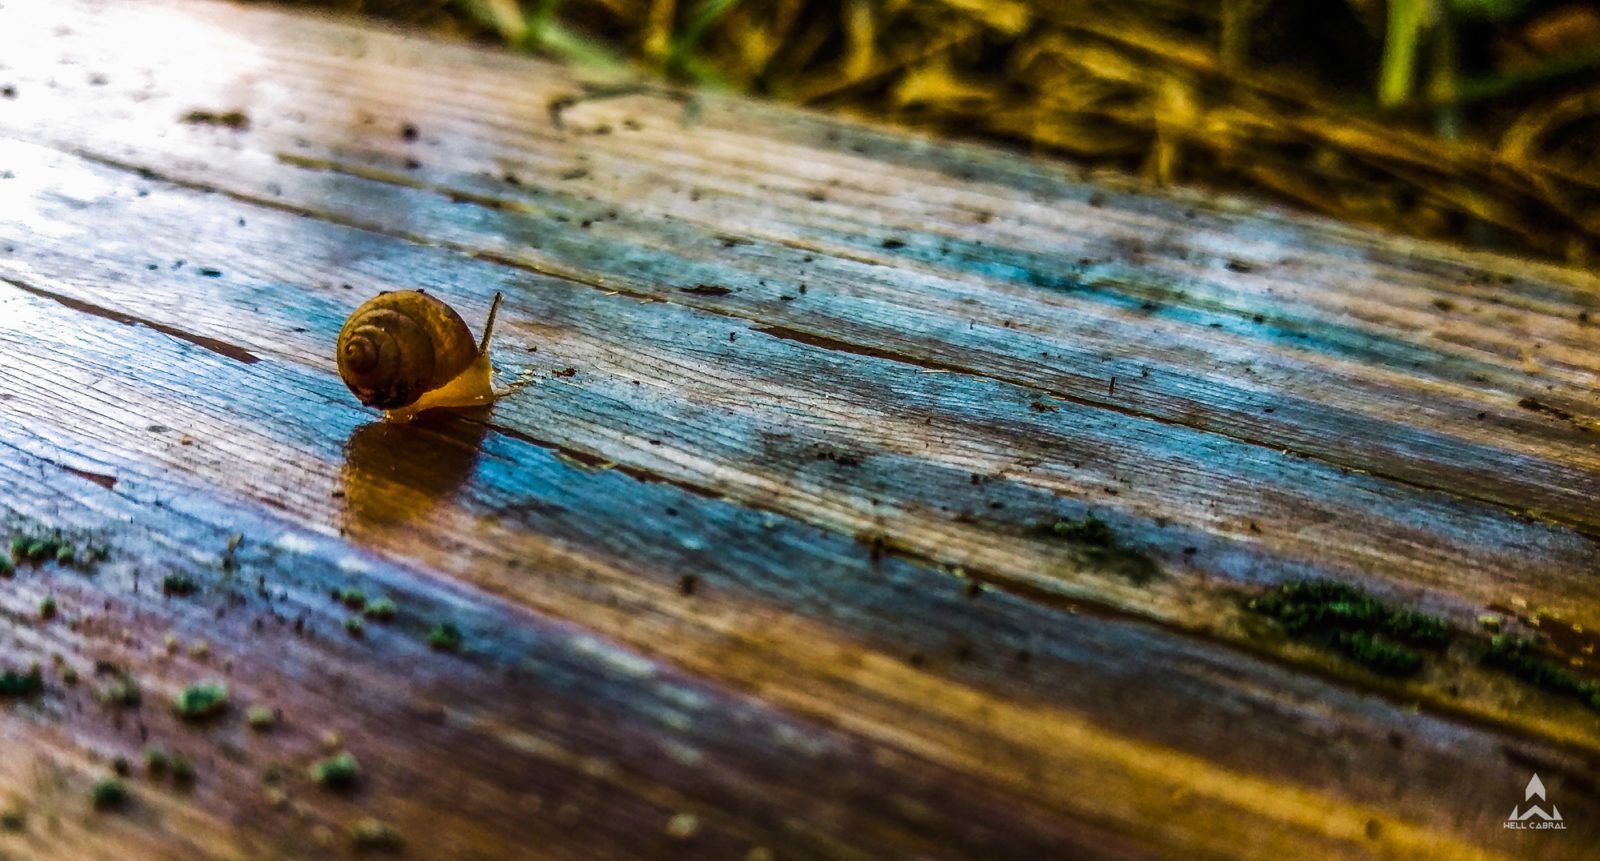 A snail on a bit of wood